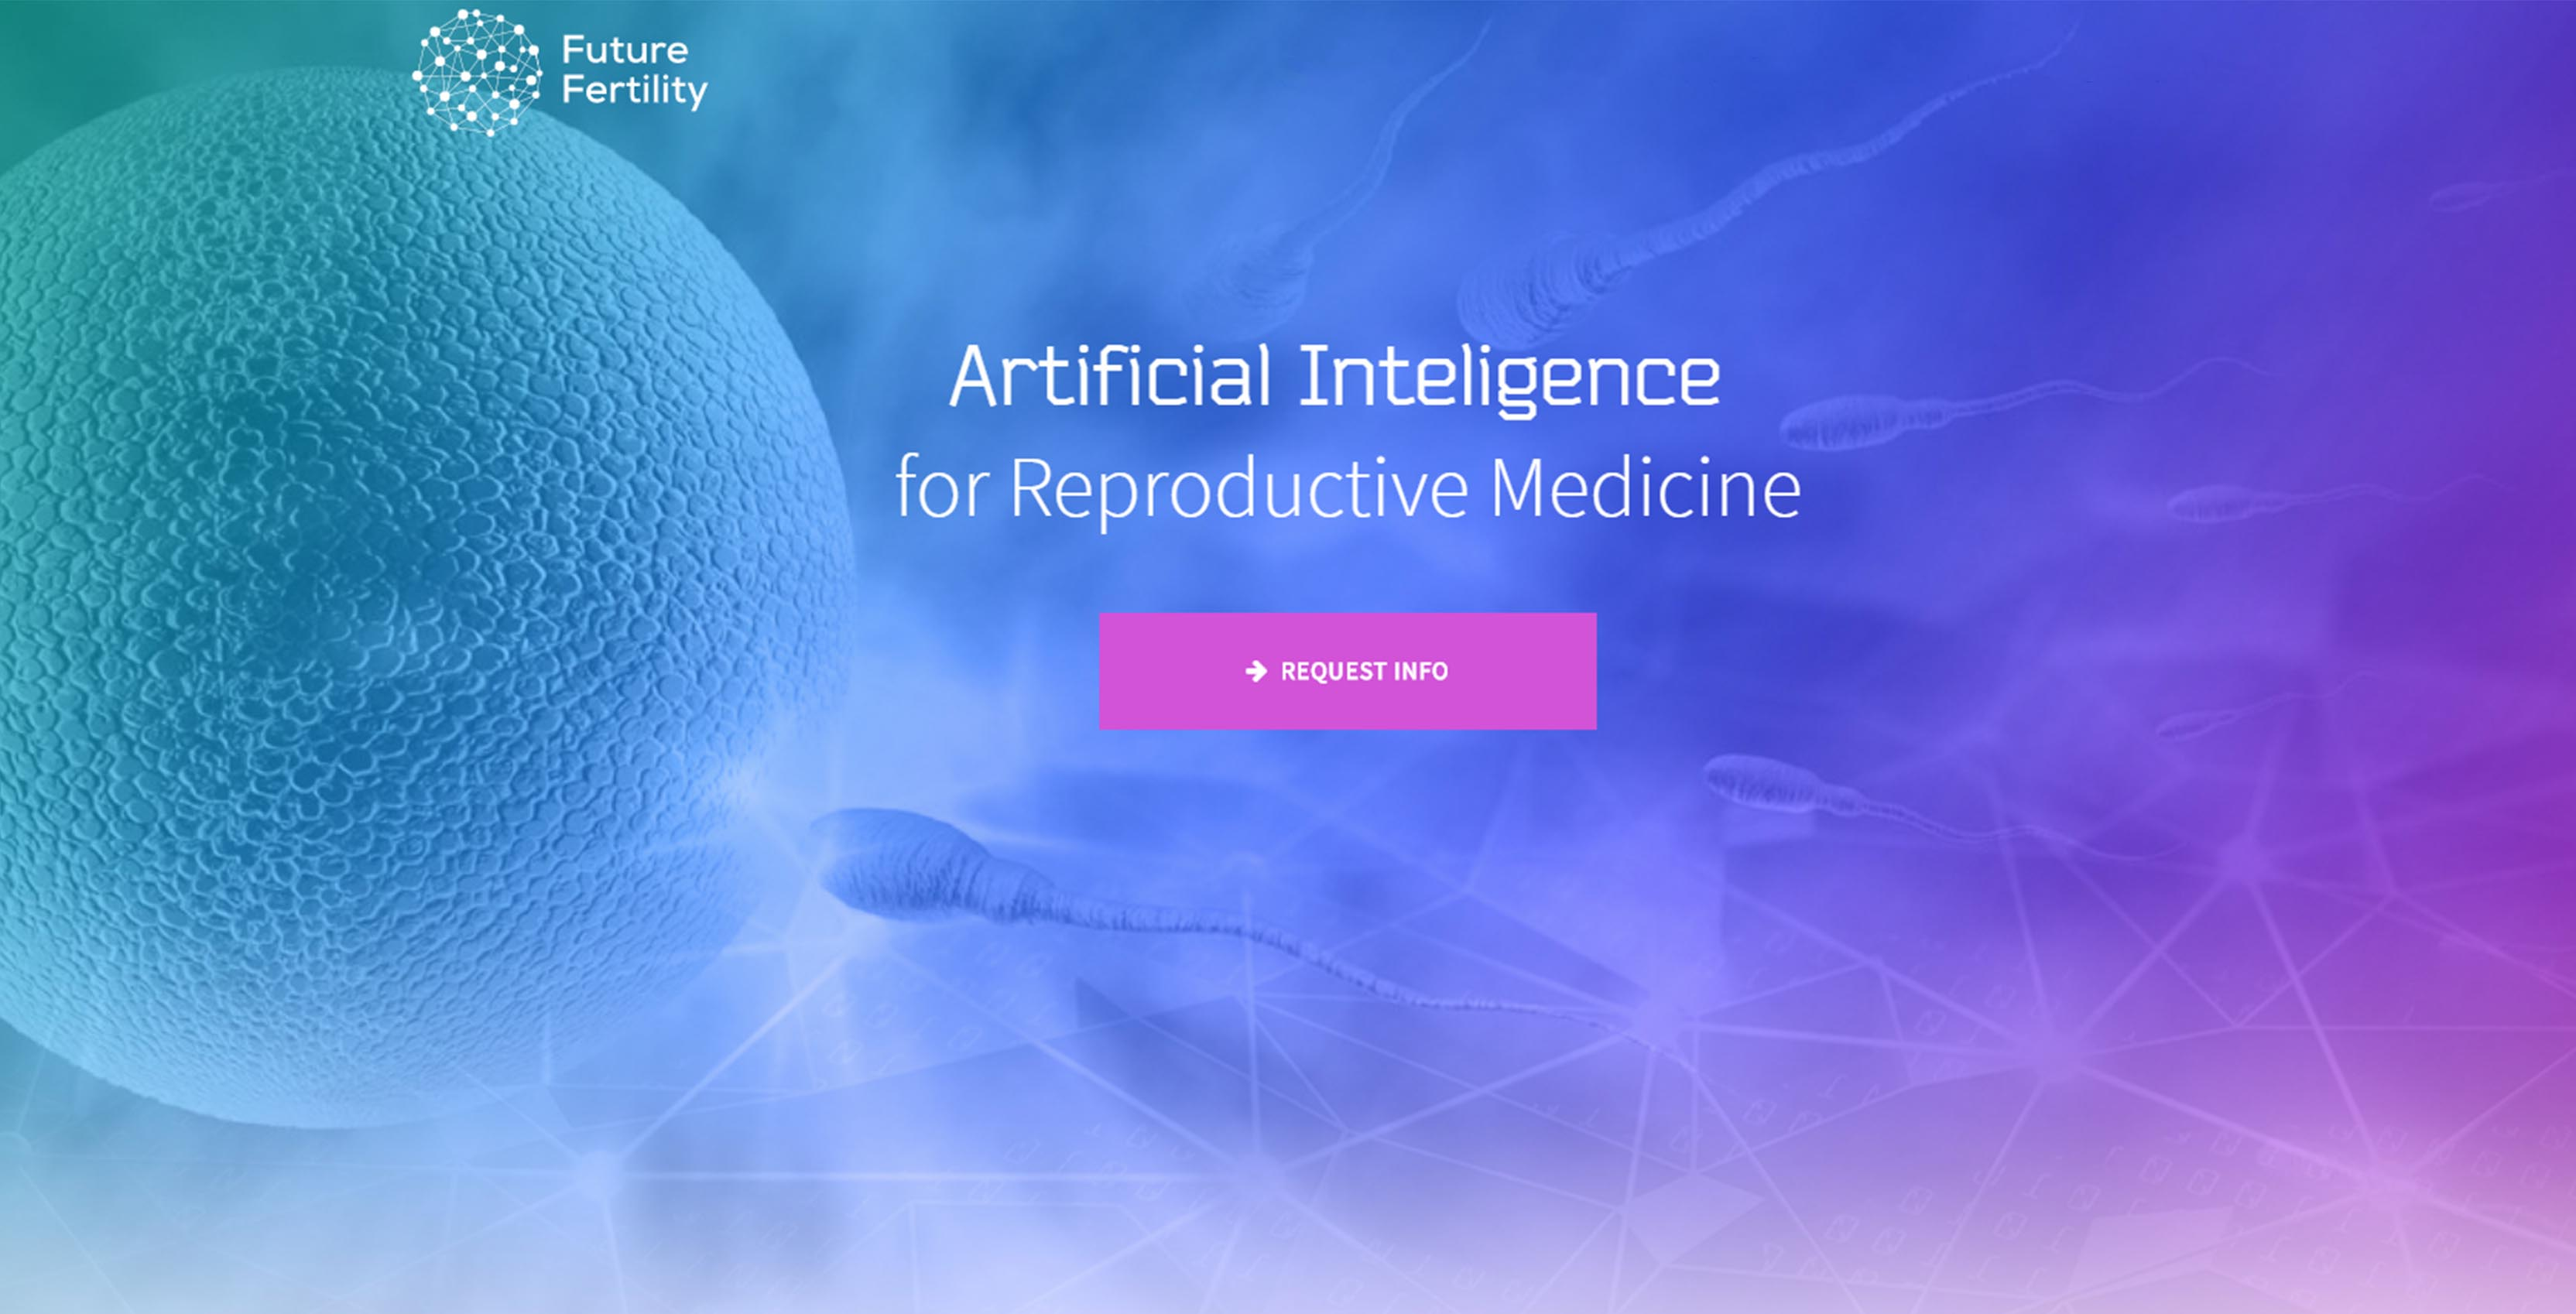 392da360 ... on ice and In vitro fertilization (IVF) options are growing in  popularity with millennials, but these techniques don't guarantee a  successful pregnancy.